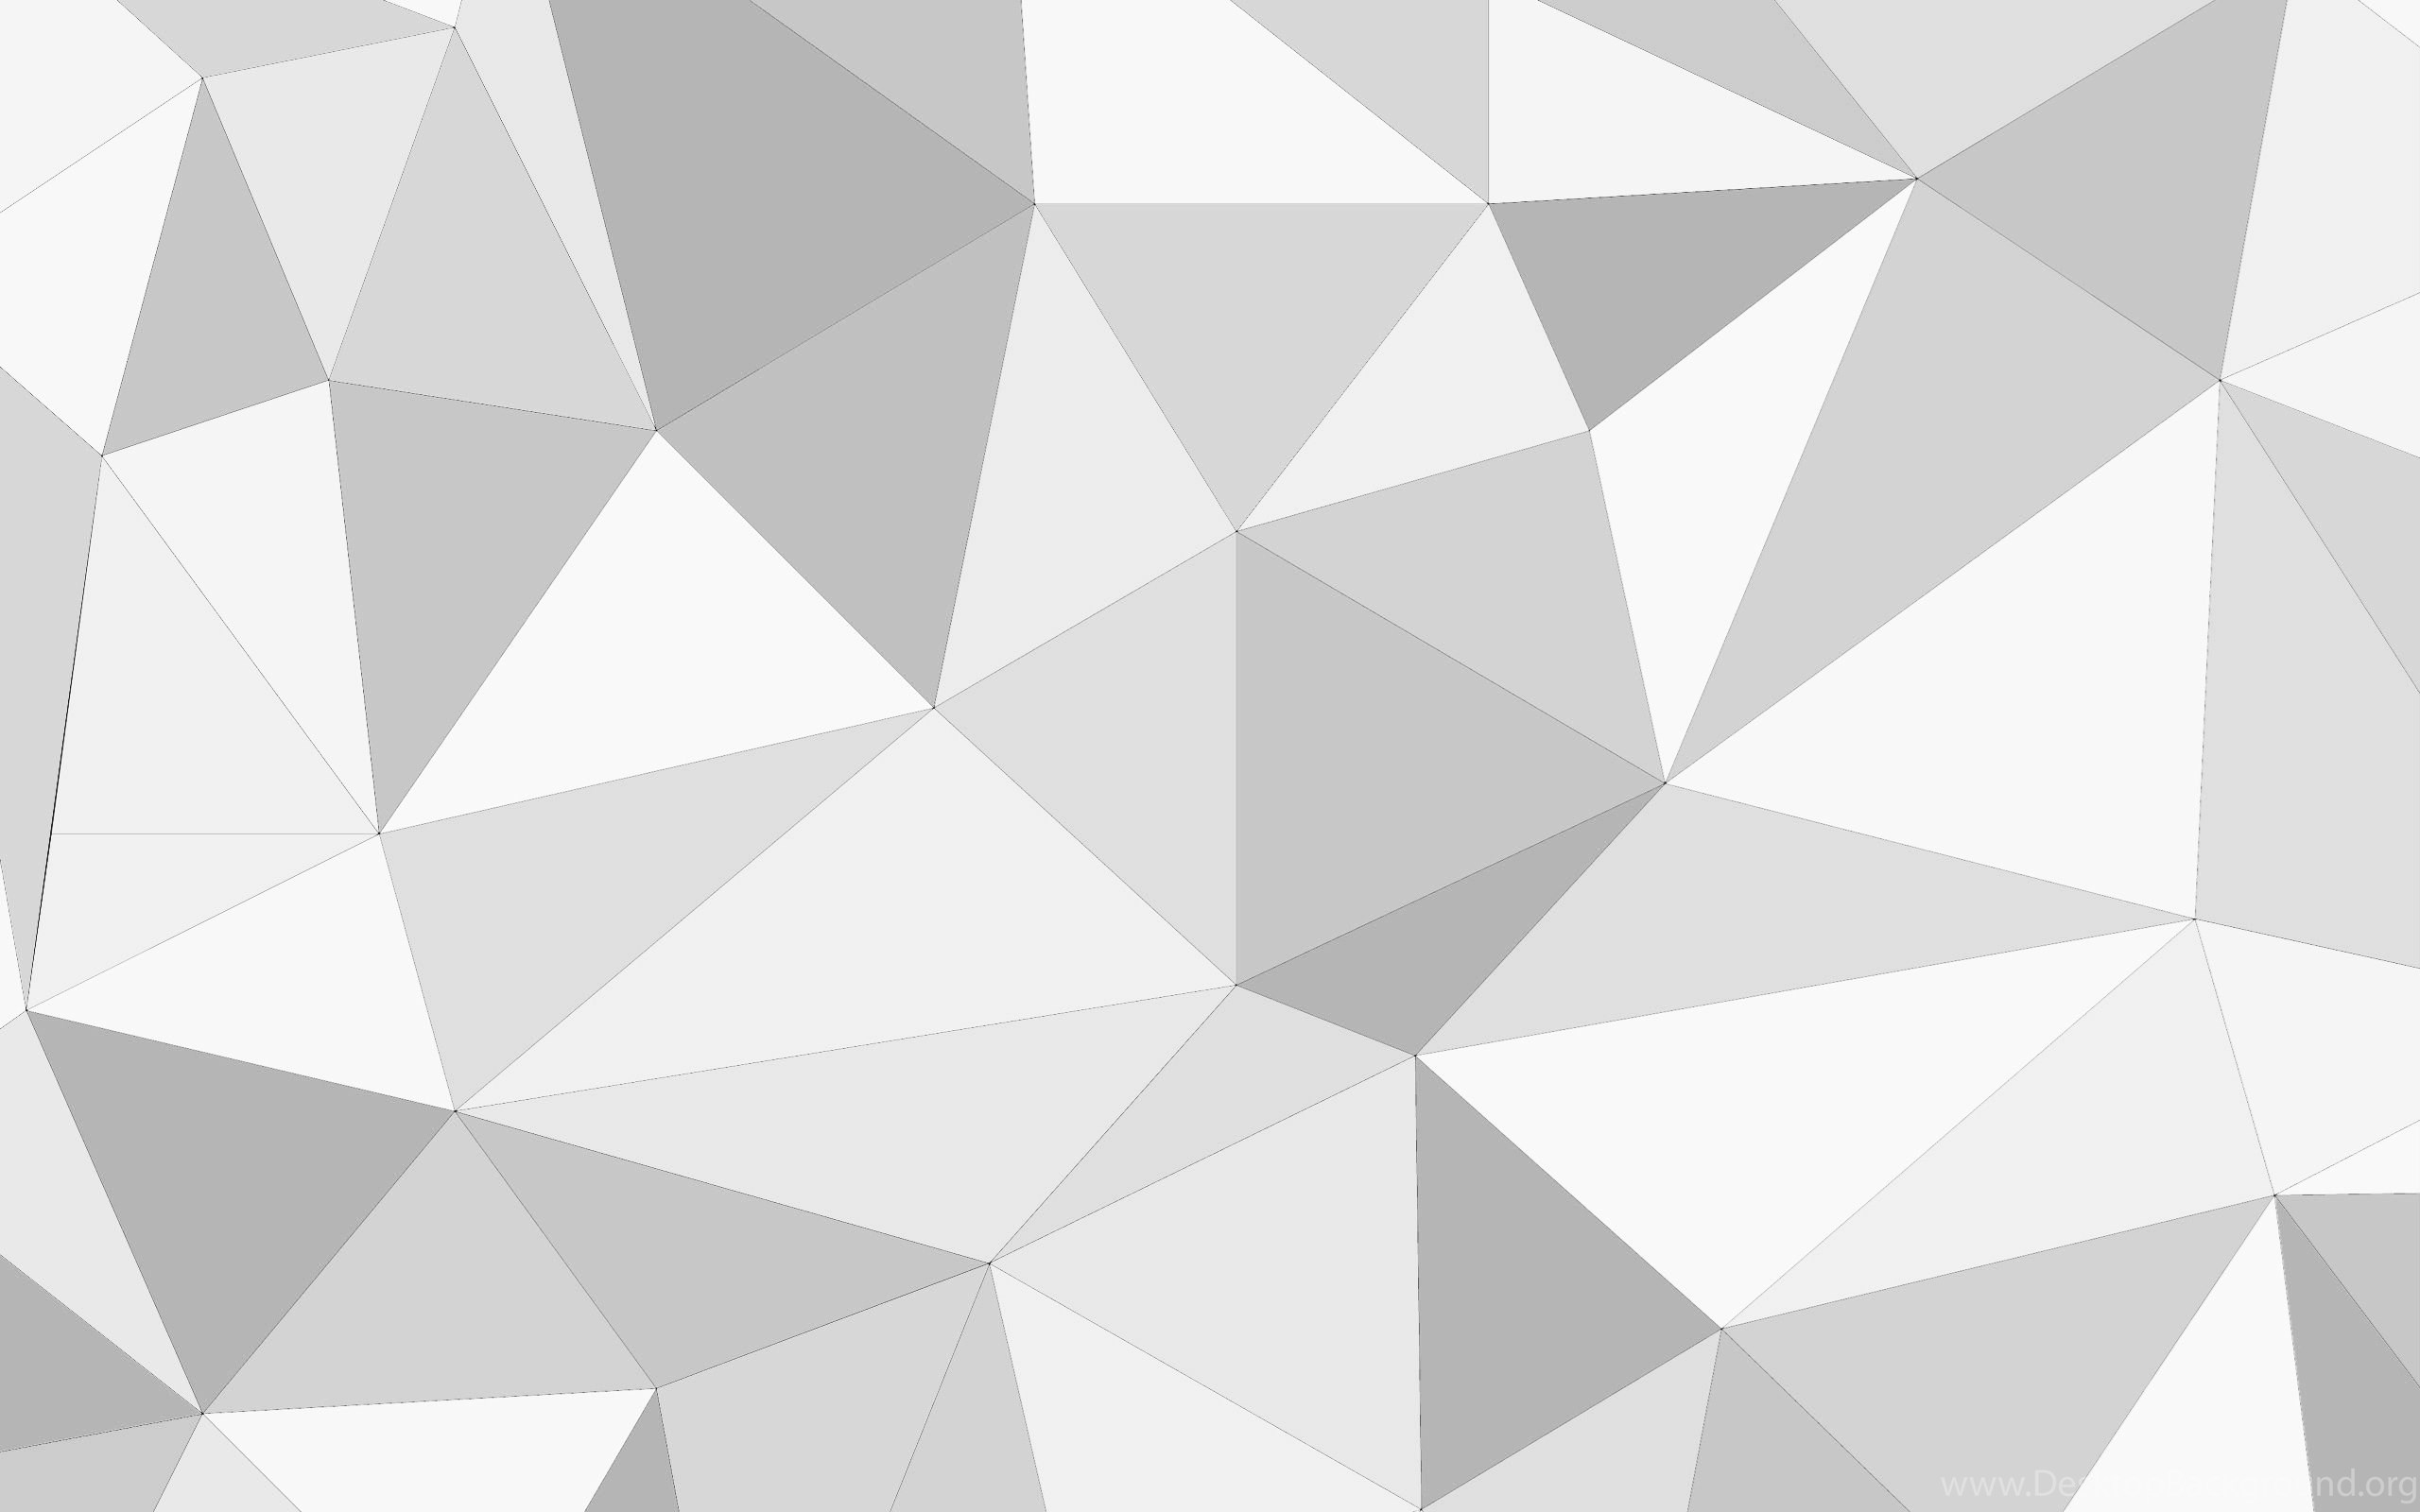 828 Purple Triangles 2560x1600 Vector Wallpaper.jpg